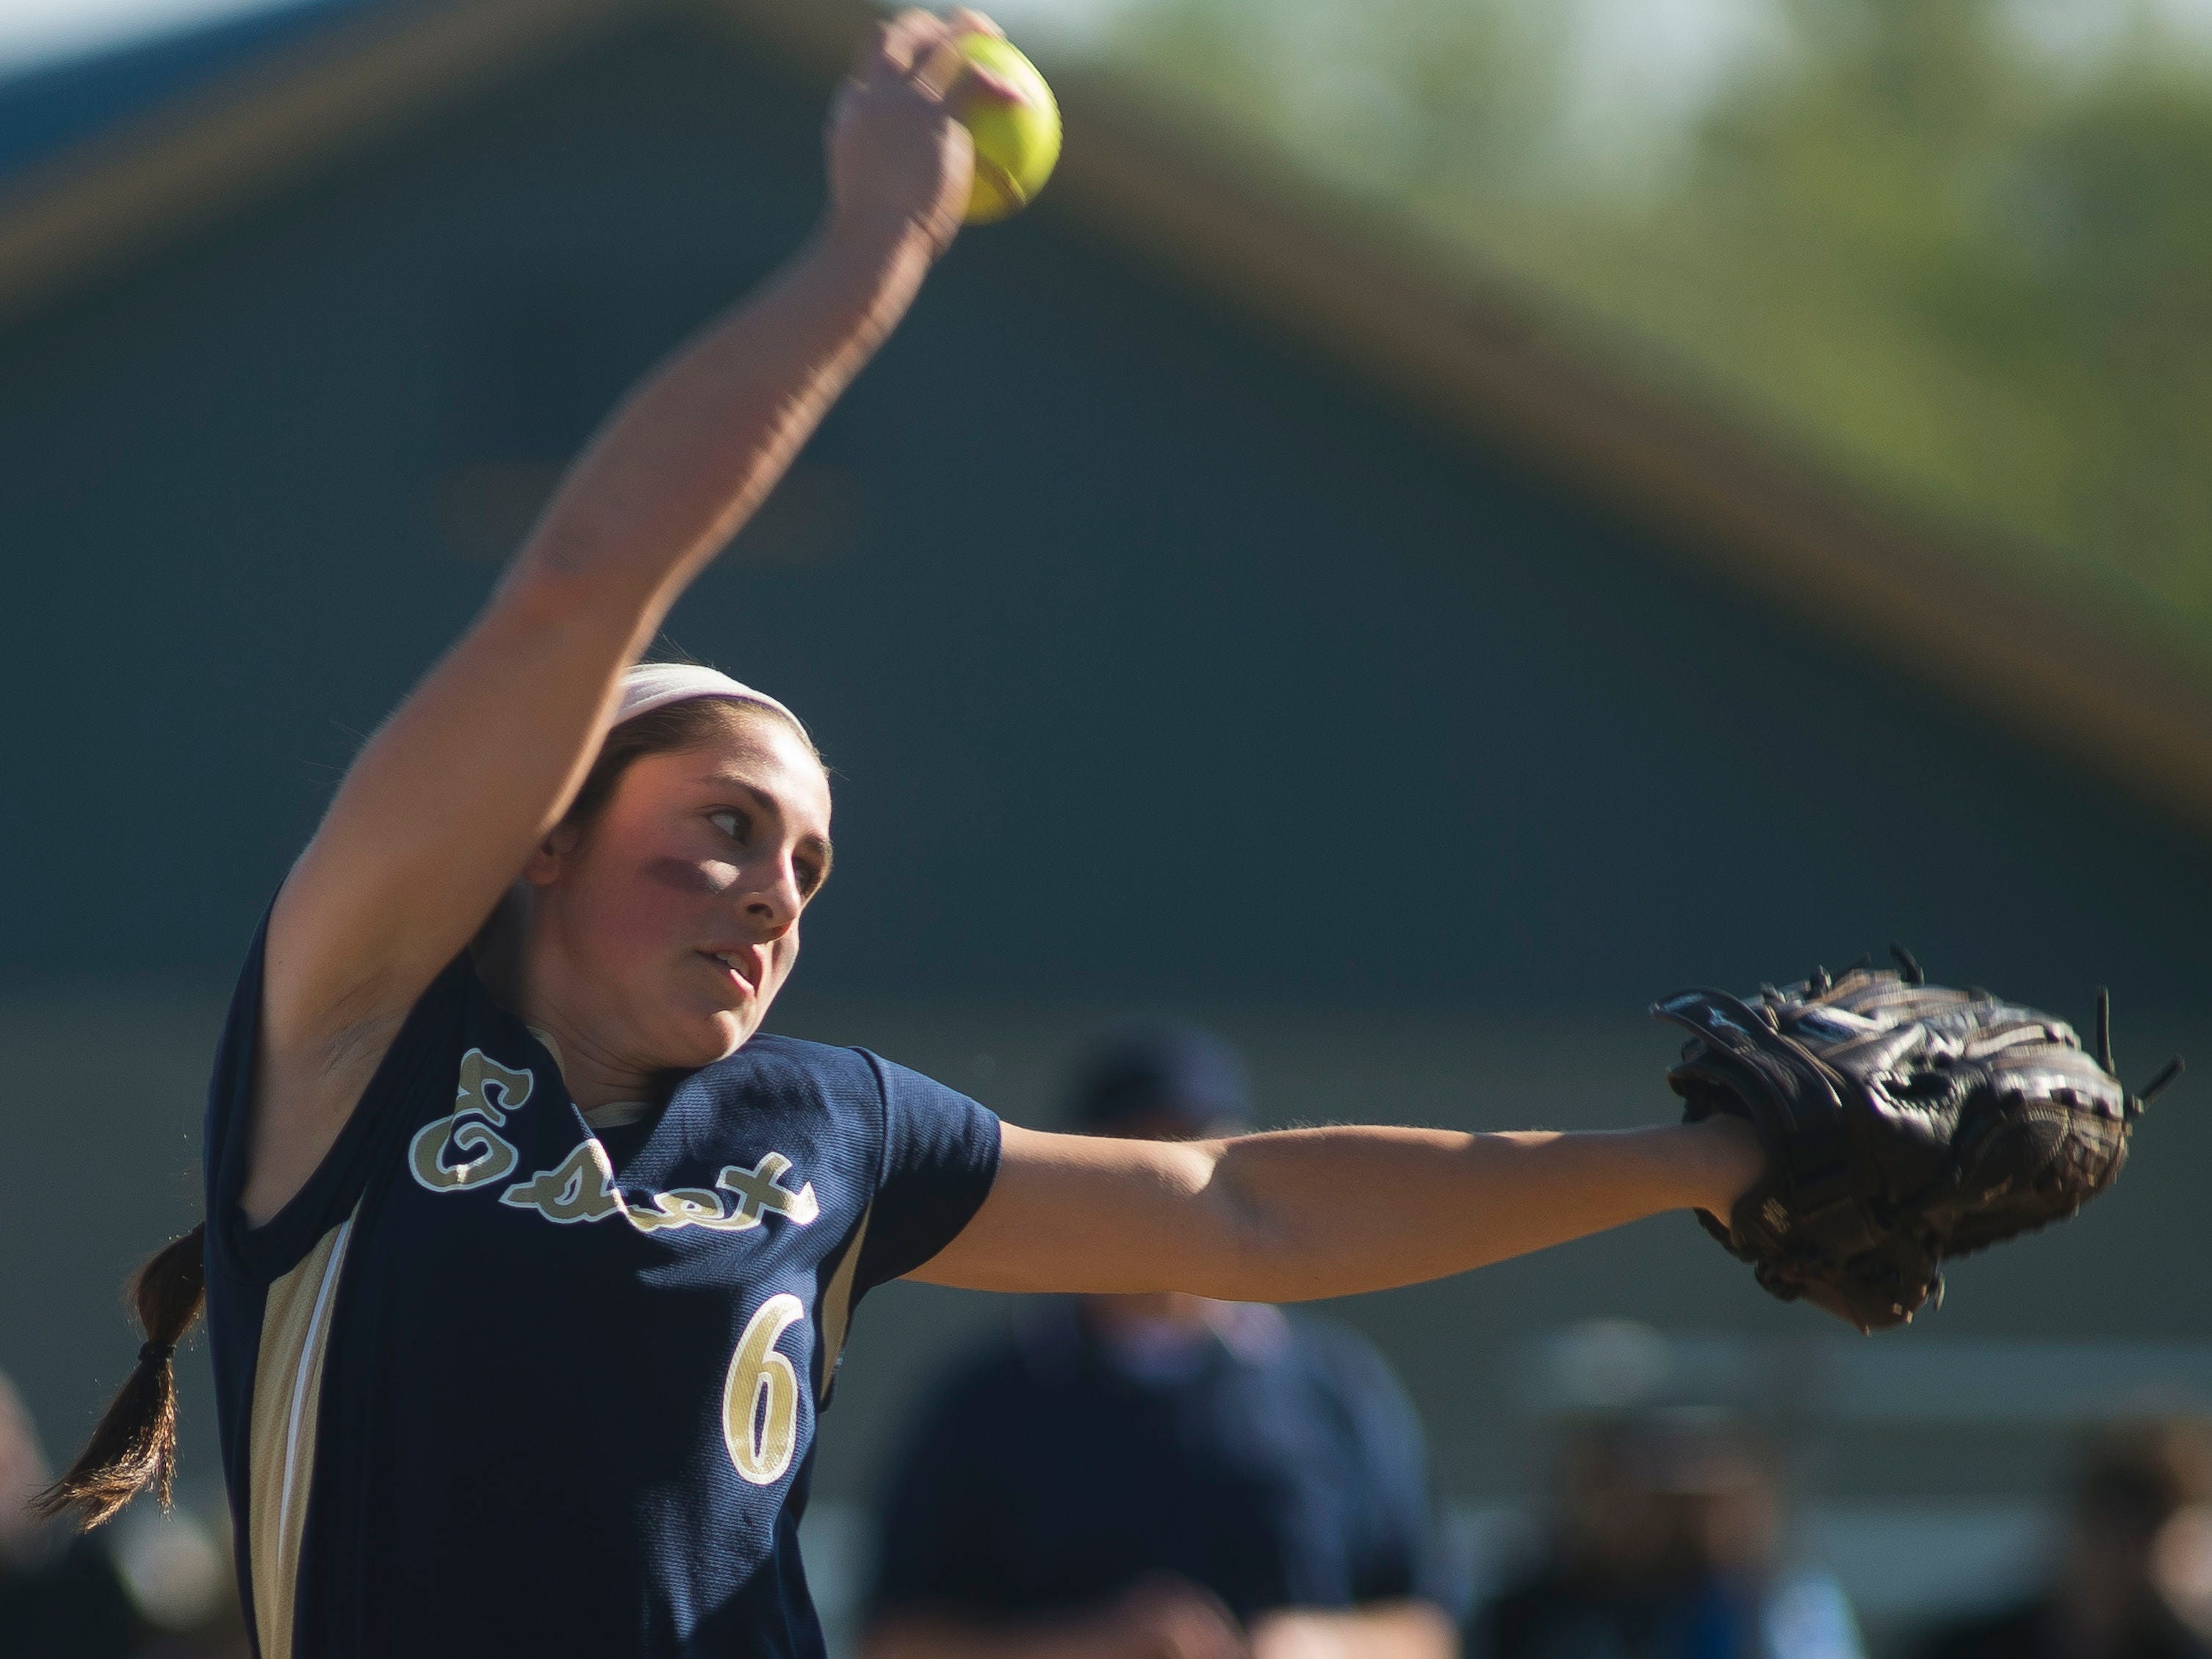 Essex pitcher #6 Allison Rutz winds up, delivering a strike to Missisquoi Valley. Inning after inning went scoreless between the two, until Missisquoi Valley found an opening late in the game, pulling off a 4-0 win at Essex Tuesday.